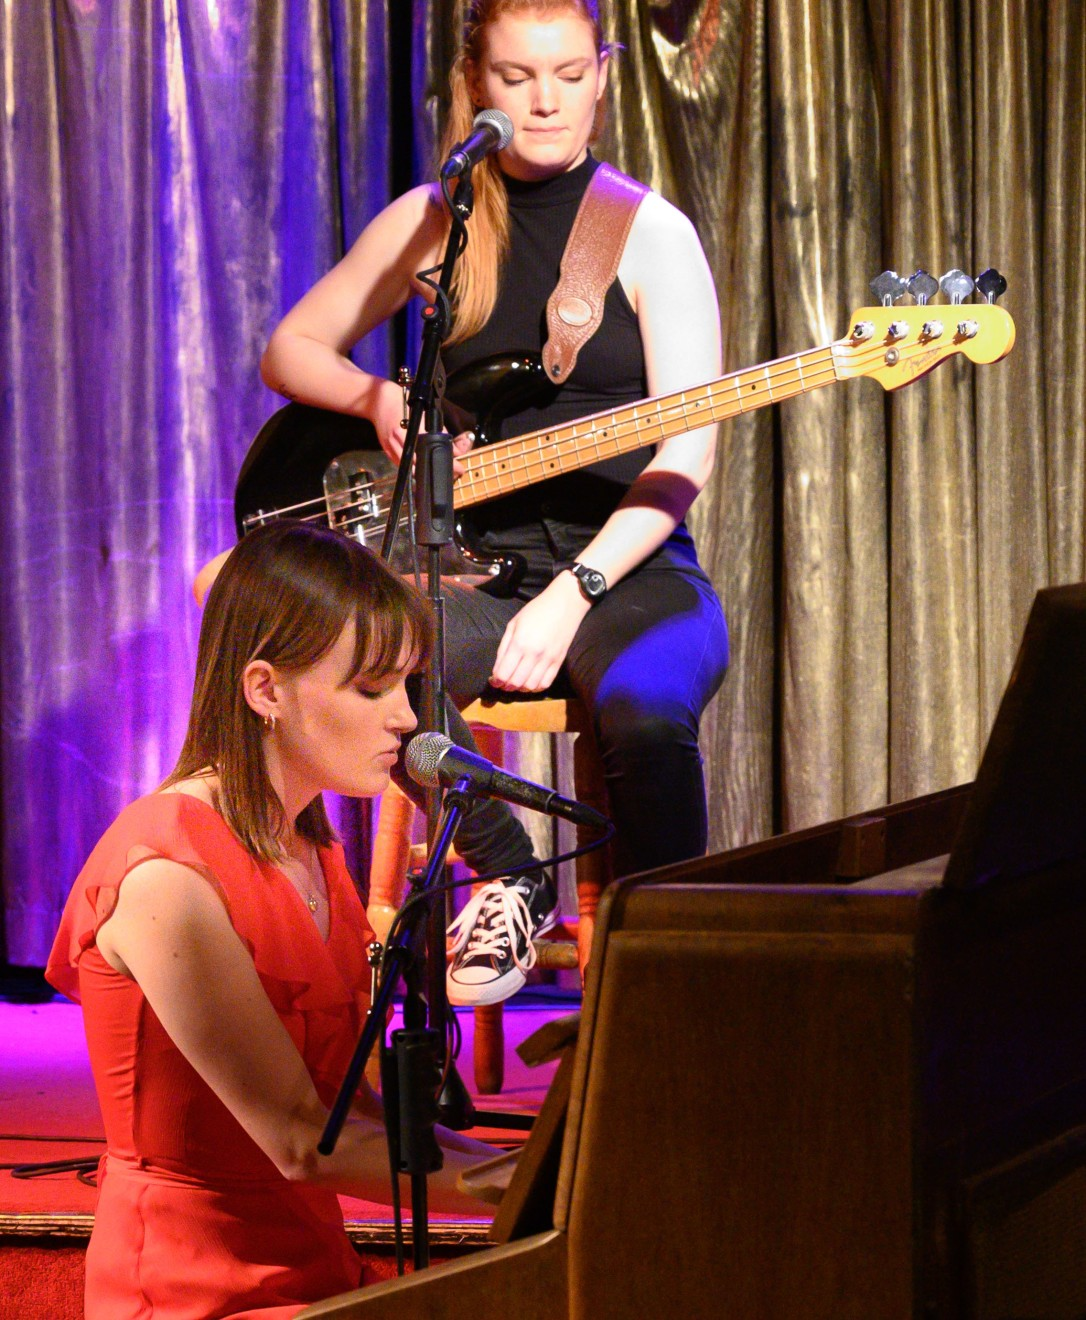 Josie serious piano Dina bass